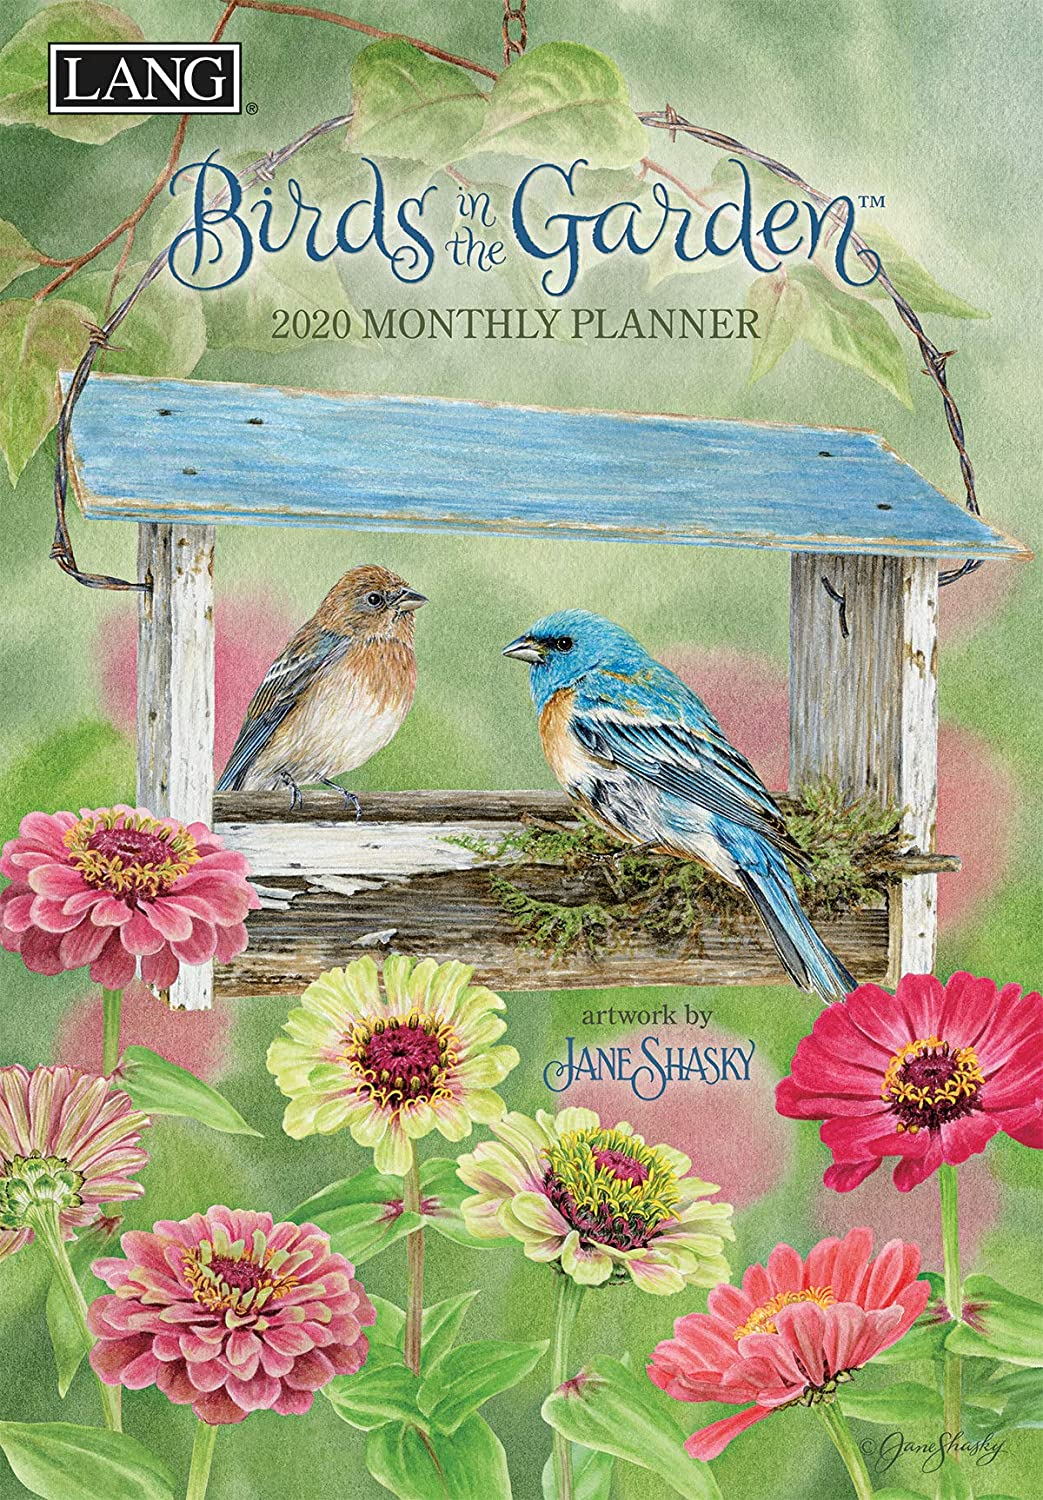 Lang Birds in The Garden 2020 Monthly Planner (20991012115)